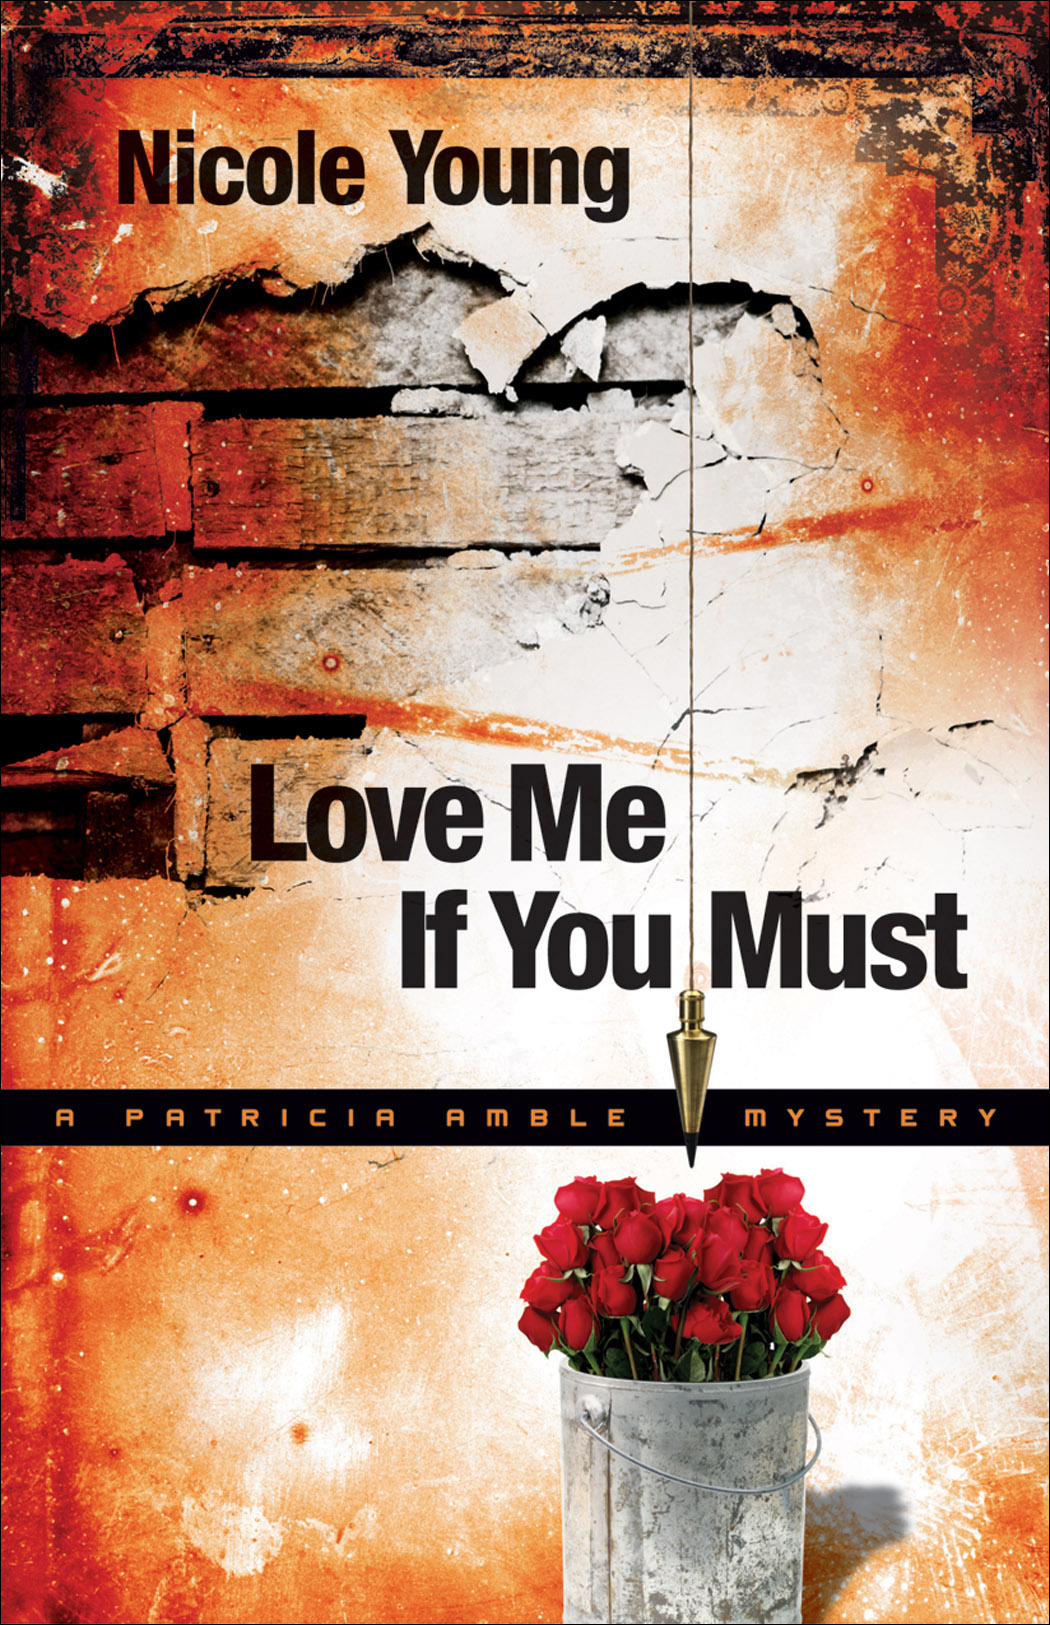 Love Me If You Must (Patricia Amble Mystery Book #1) By: Nicole Young